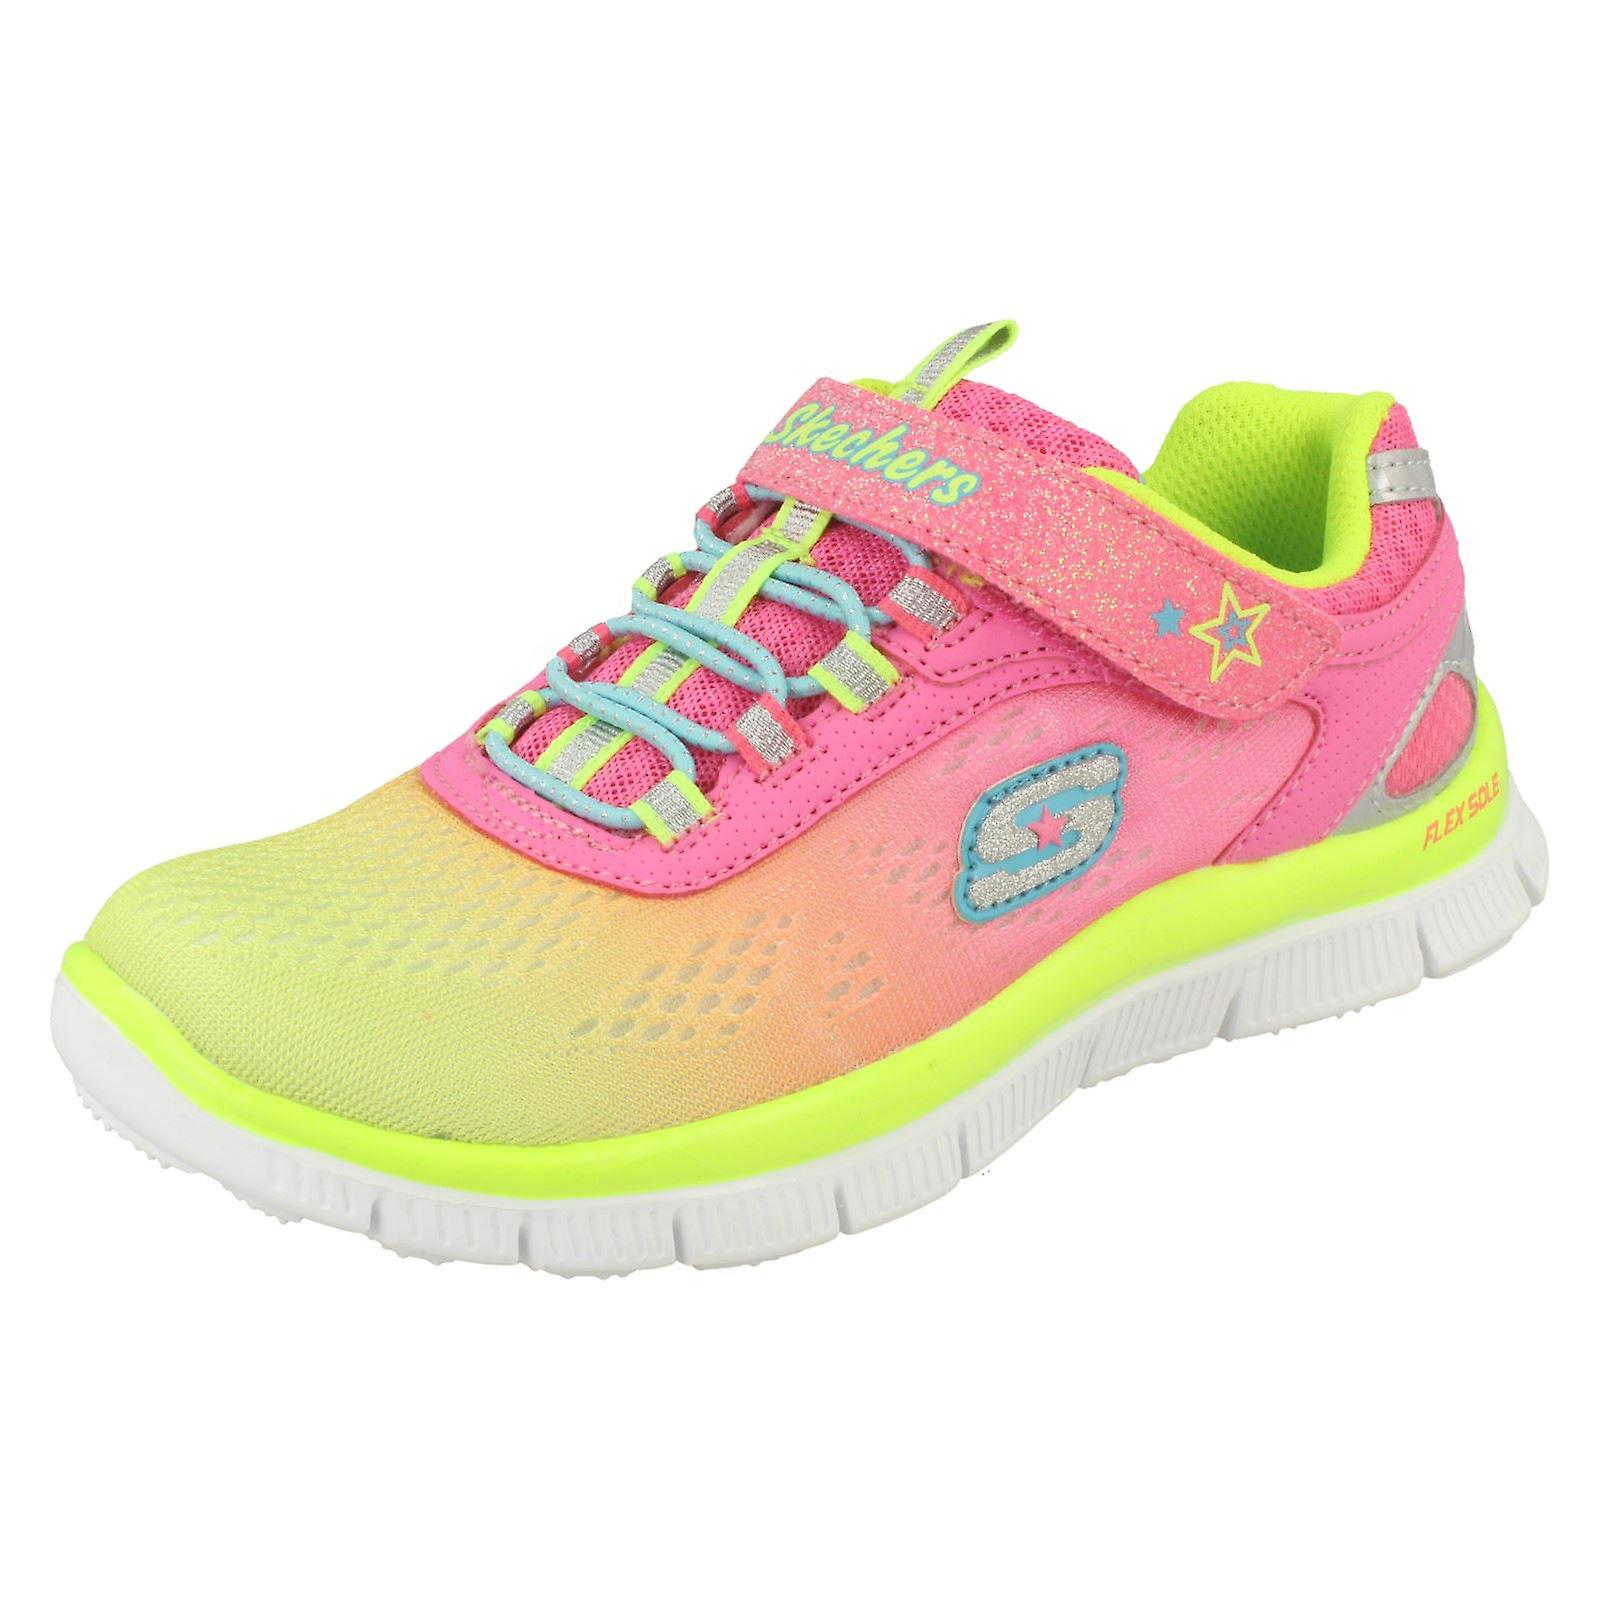 Girls Skechers Trainers Style - Skech Appeal